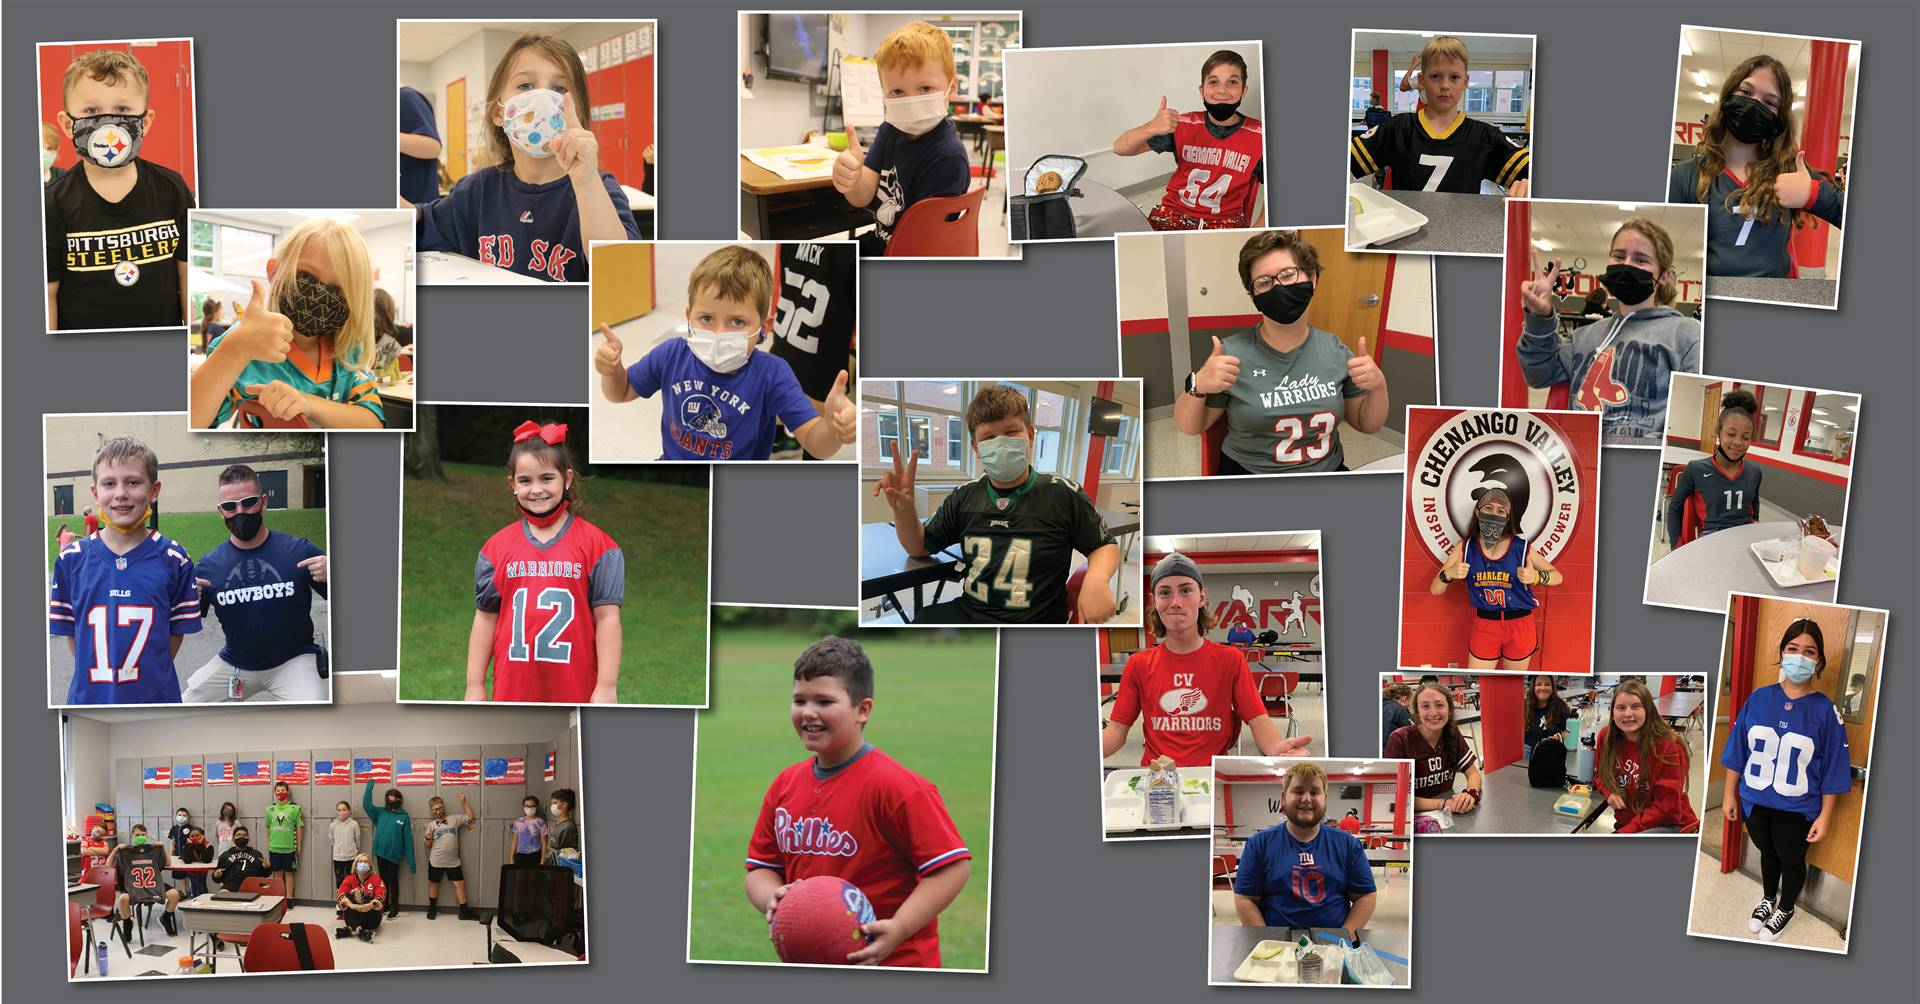 students dressed for jersey/sports day